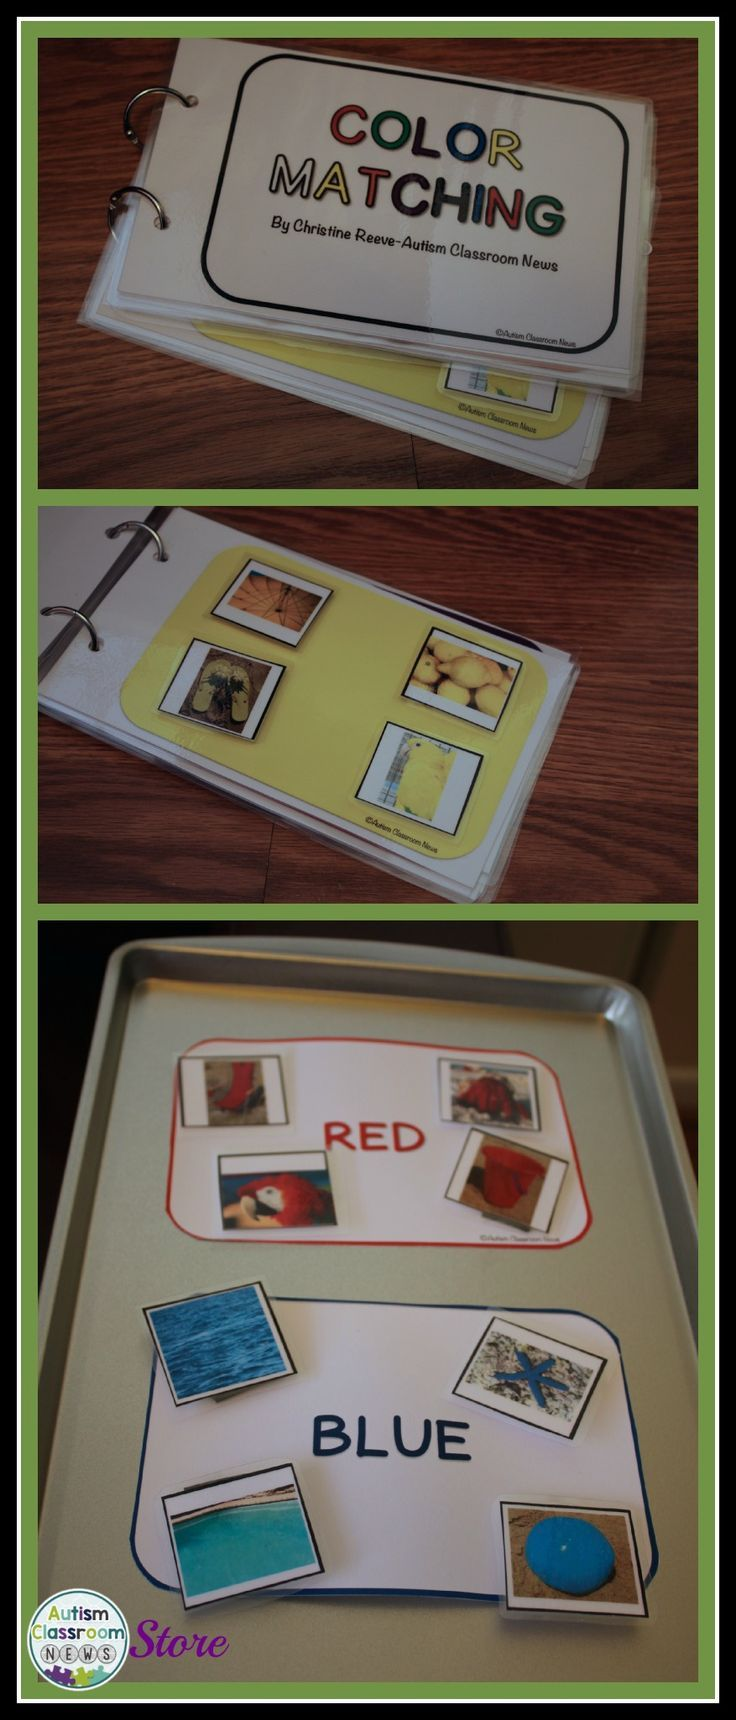 An interactive book, file folder or cookie sheet activity depending how you want to use it. Great for kids with ASD and early childhood learners. The set includes other interactive books and mini books as well.